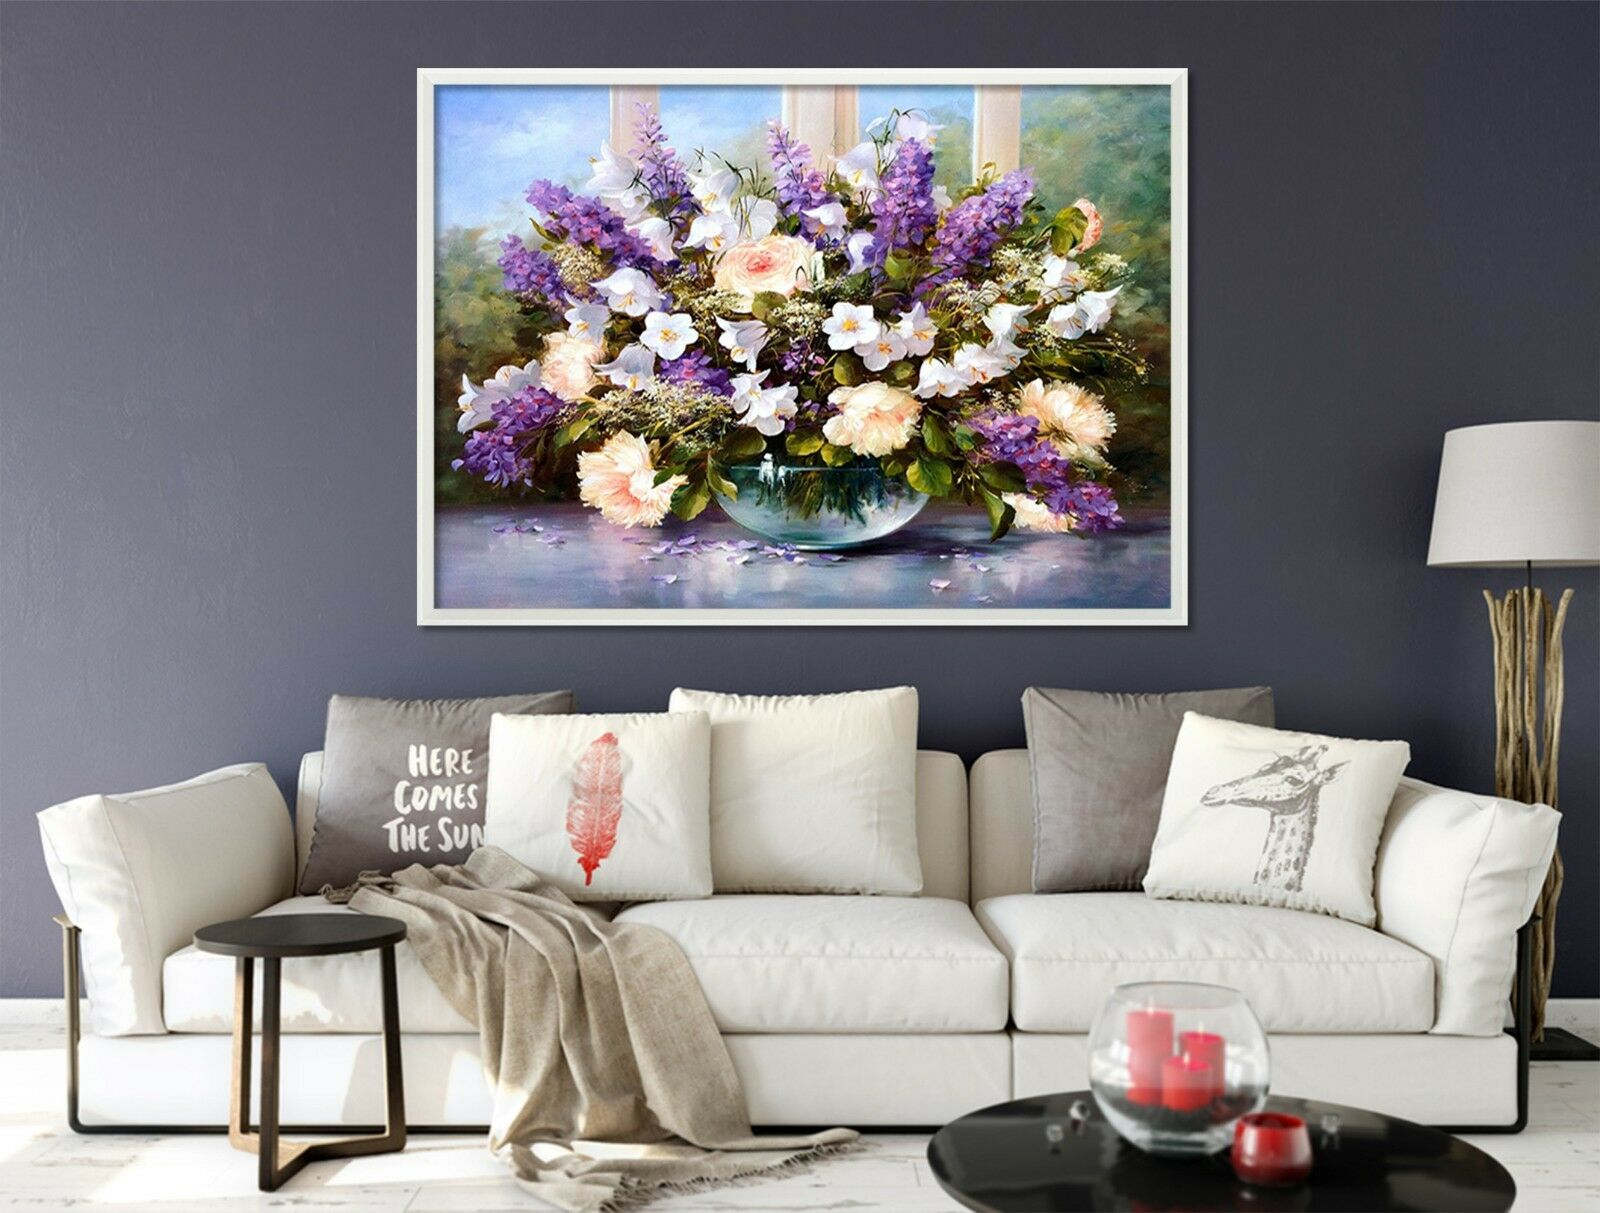 3D Potted Plant 6 Fake Framed Poster Home Decor Print Painting Unique Art Summer